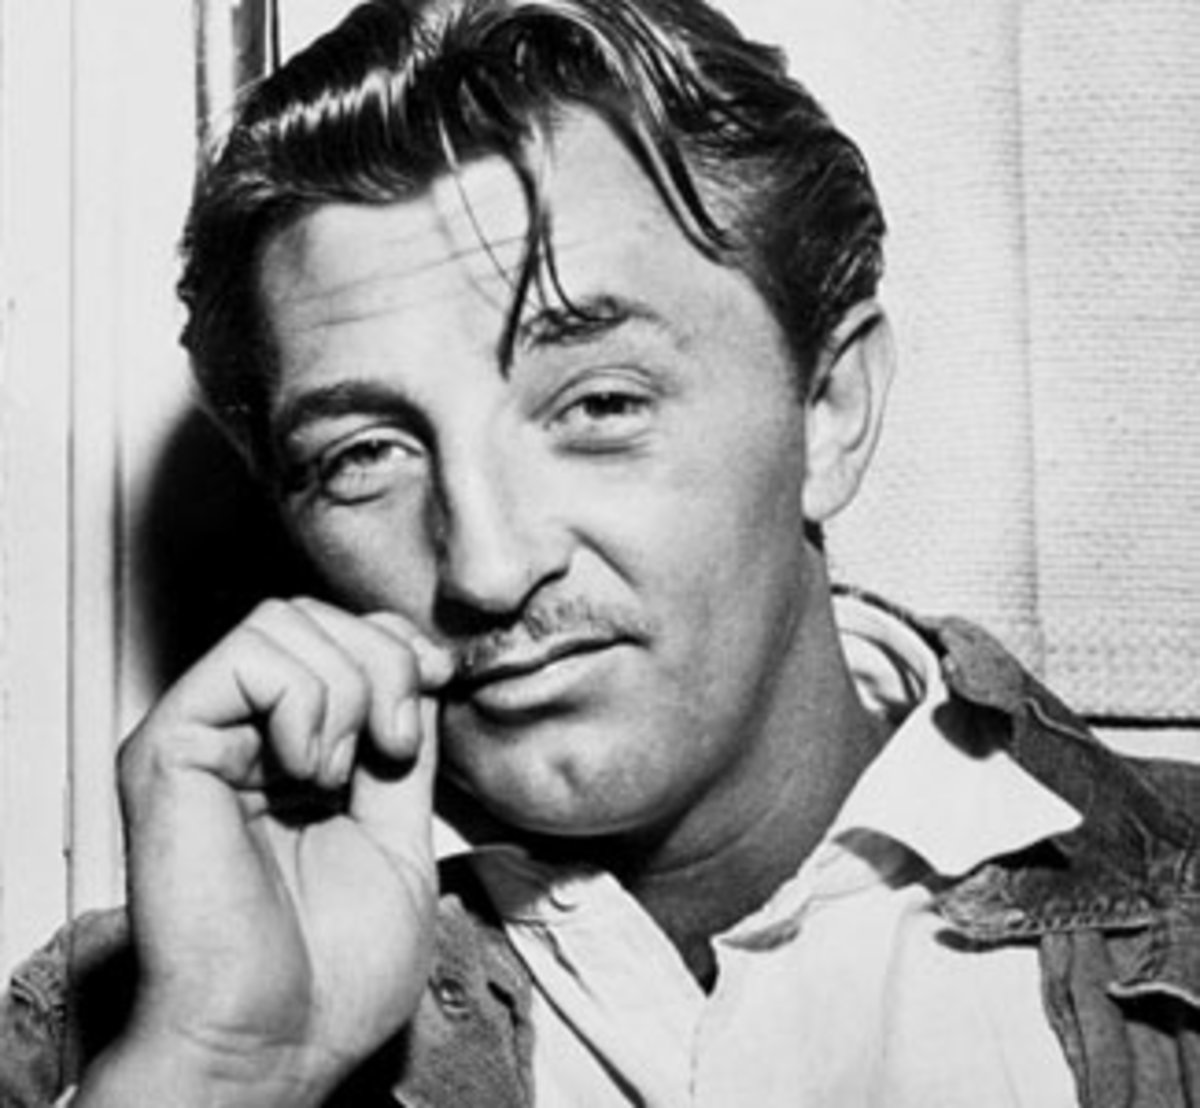 Robert Mitchum - From Chain Gang to Film Stardom